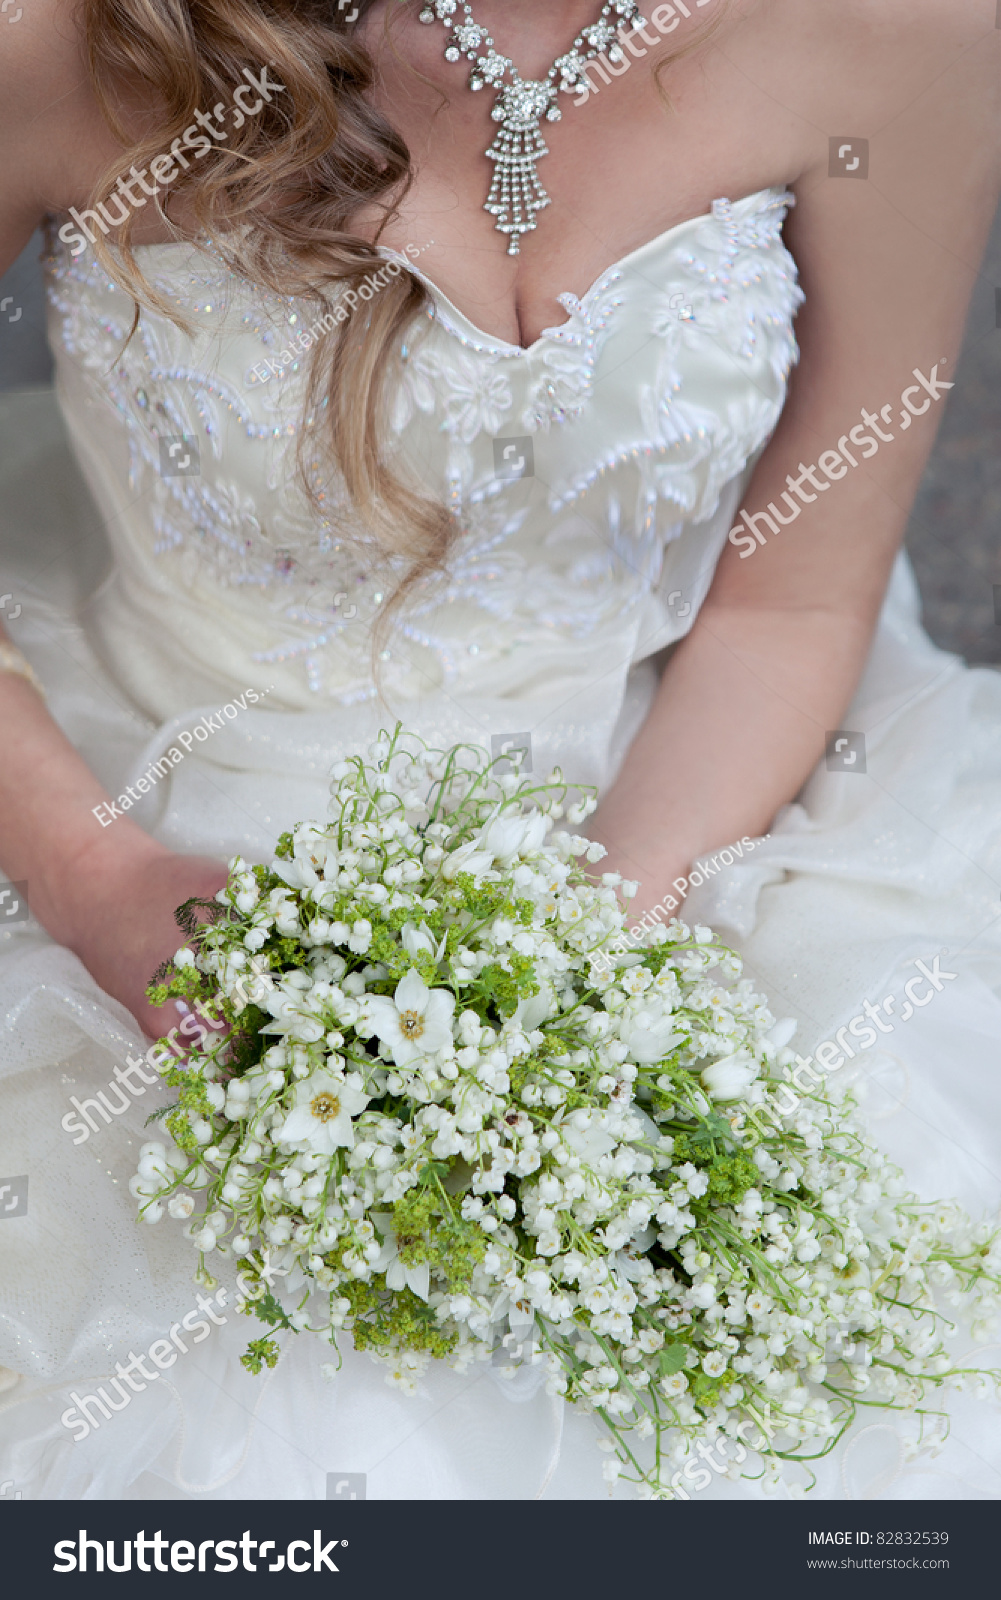 Wedding Bouquet White Small Flowers Lilyofthevalley Stock Photo